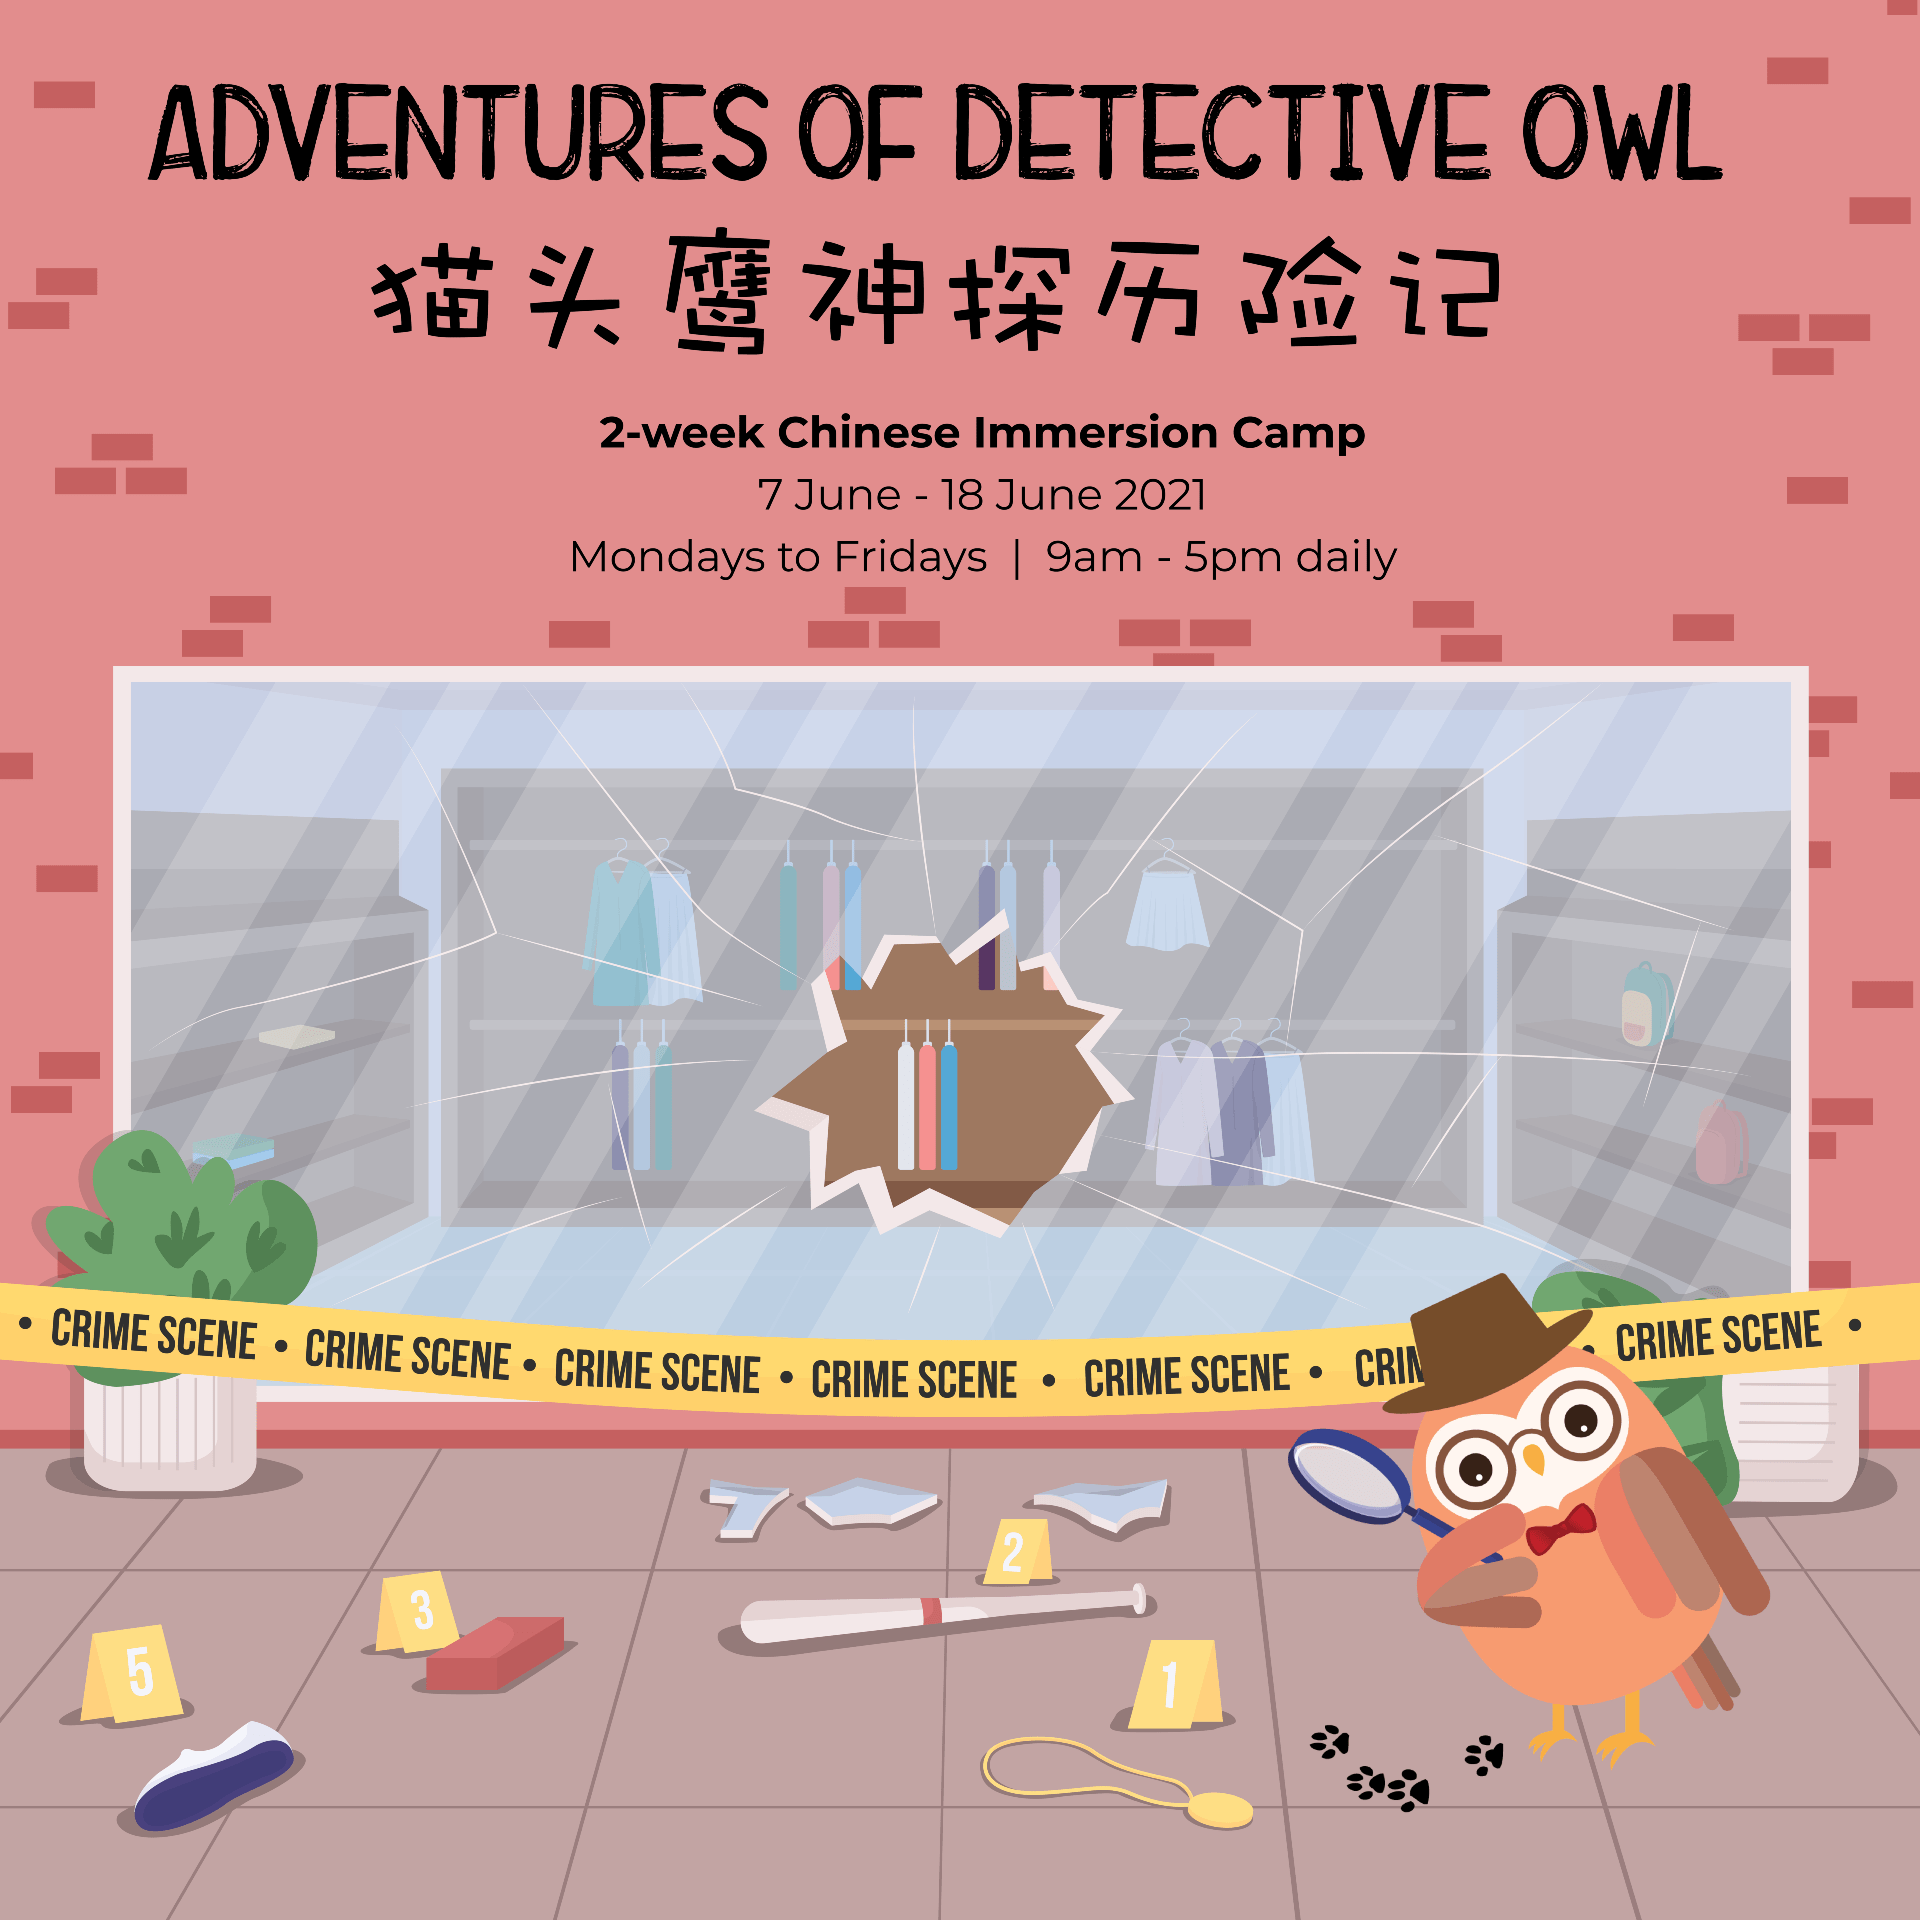 Jun 2021 Chinese Immersion Camp - The Adventures of Detective Owl